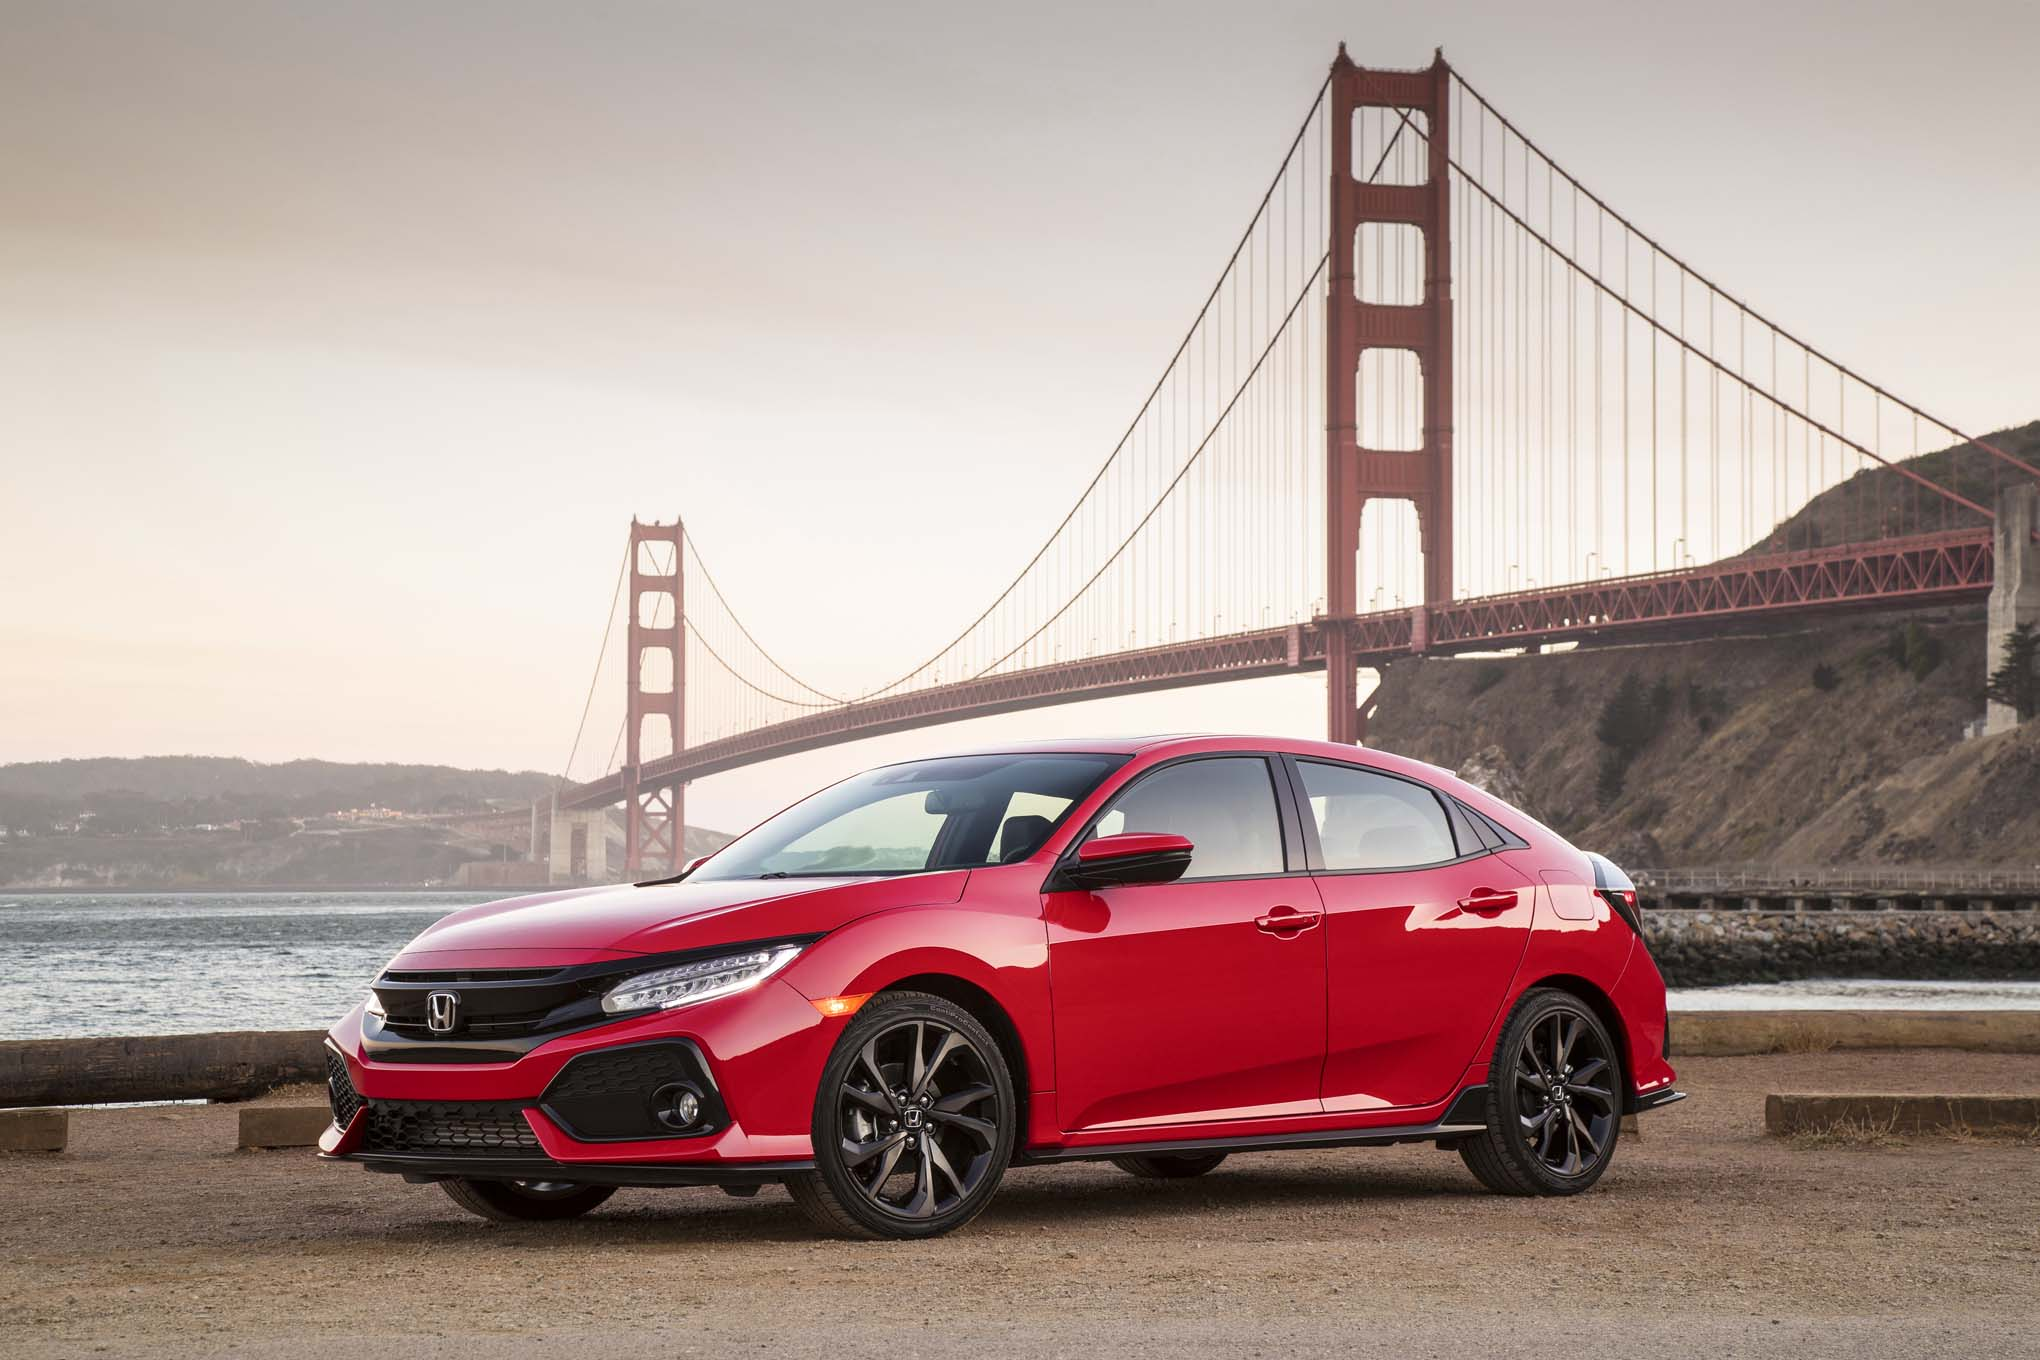 honda civic type r makes 305 hp from turbo vtec four cylinder. Black Bedroom Furniture Sets. Home Design Ideas